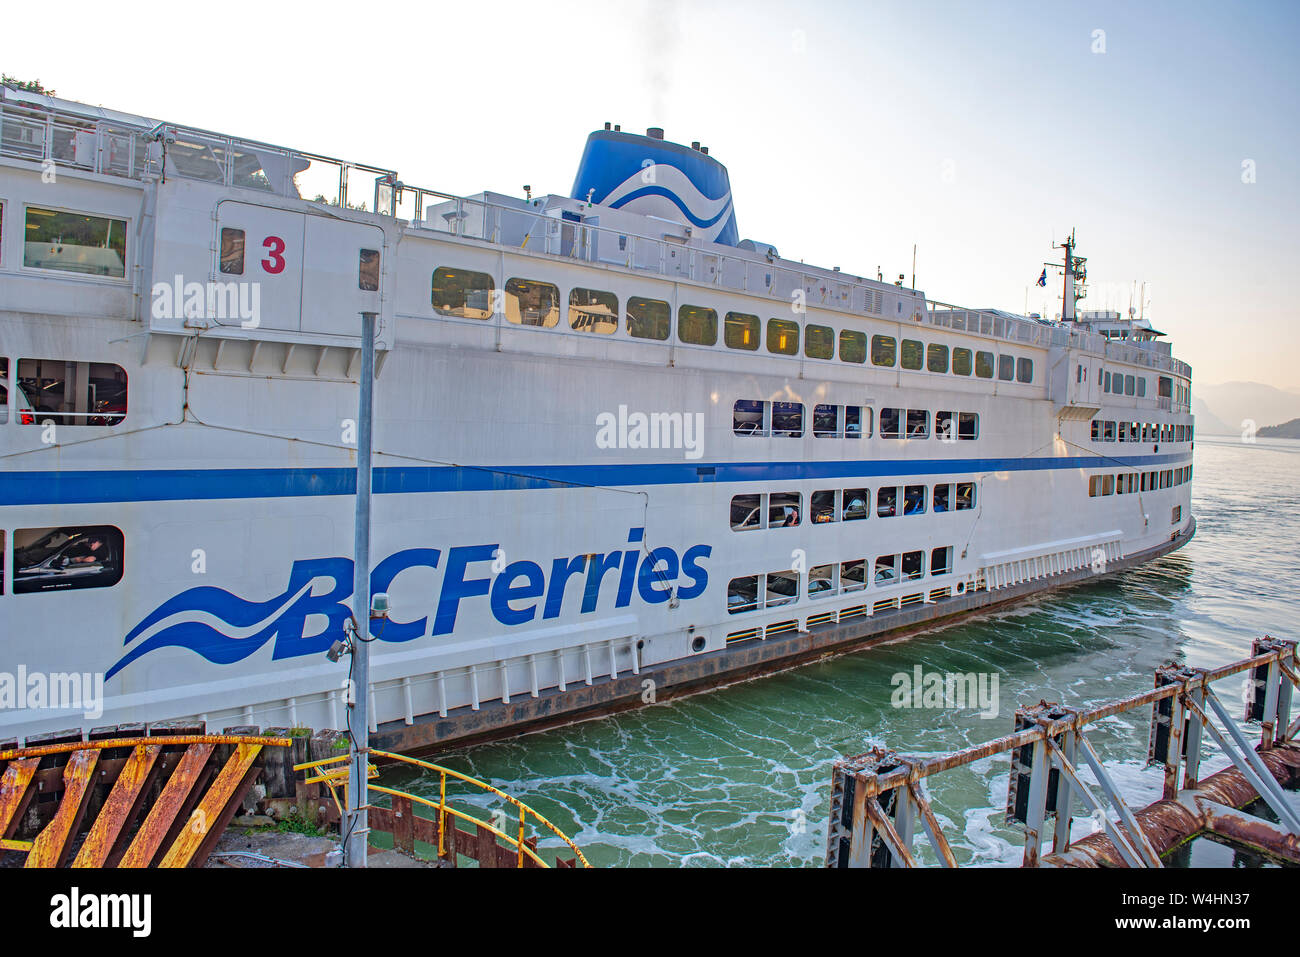 NANAIMO, BC - MAY 28, 2019: A BC ferry departing from Departure Bay in Nanaimo. BC ferries provides all major ferry services for coastal and island co Stock Photo